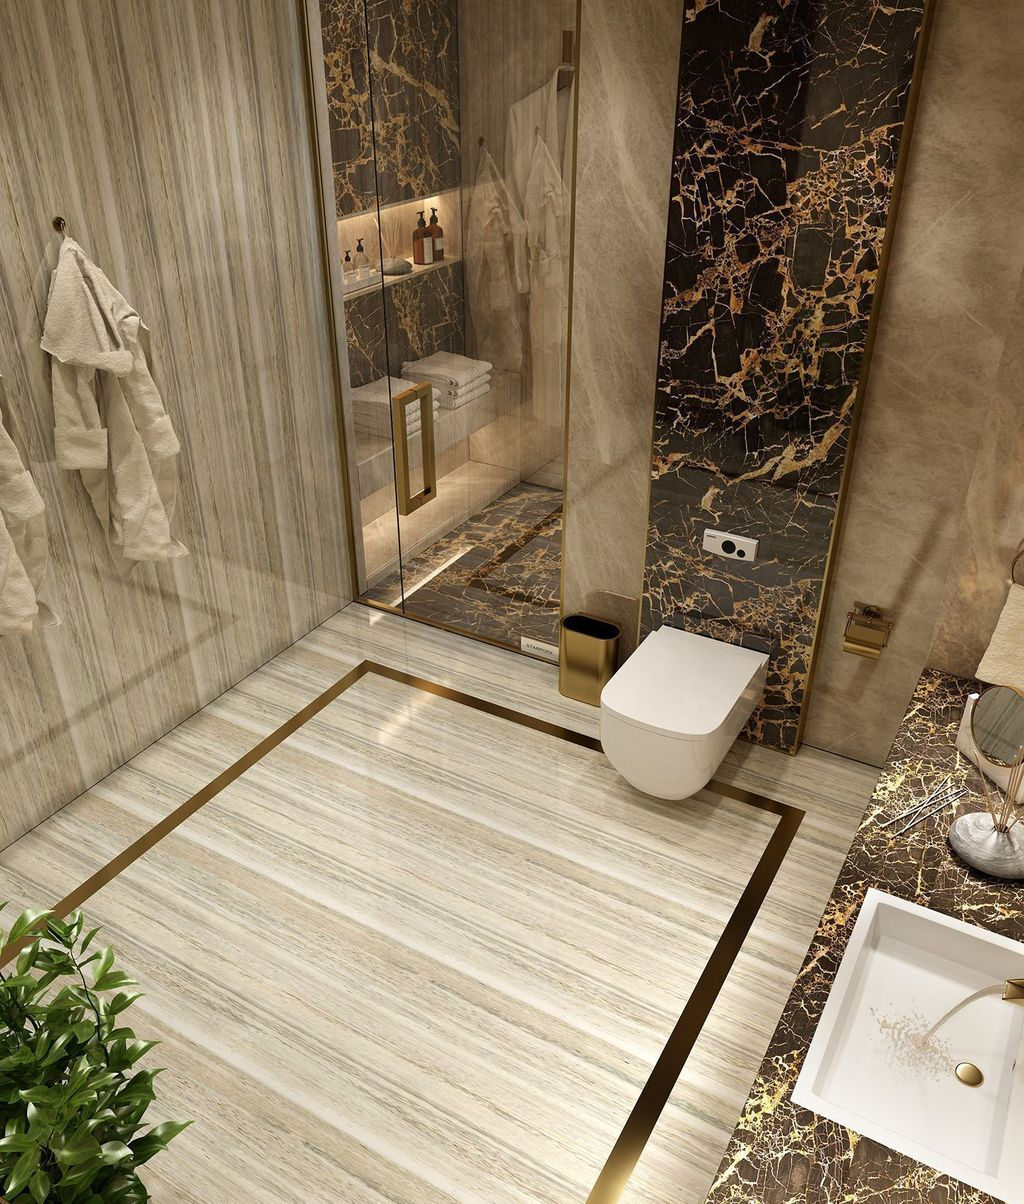 Luxury Bathroom Design And Decor Ideas 24